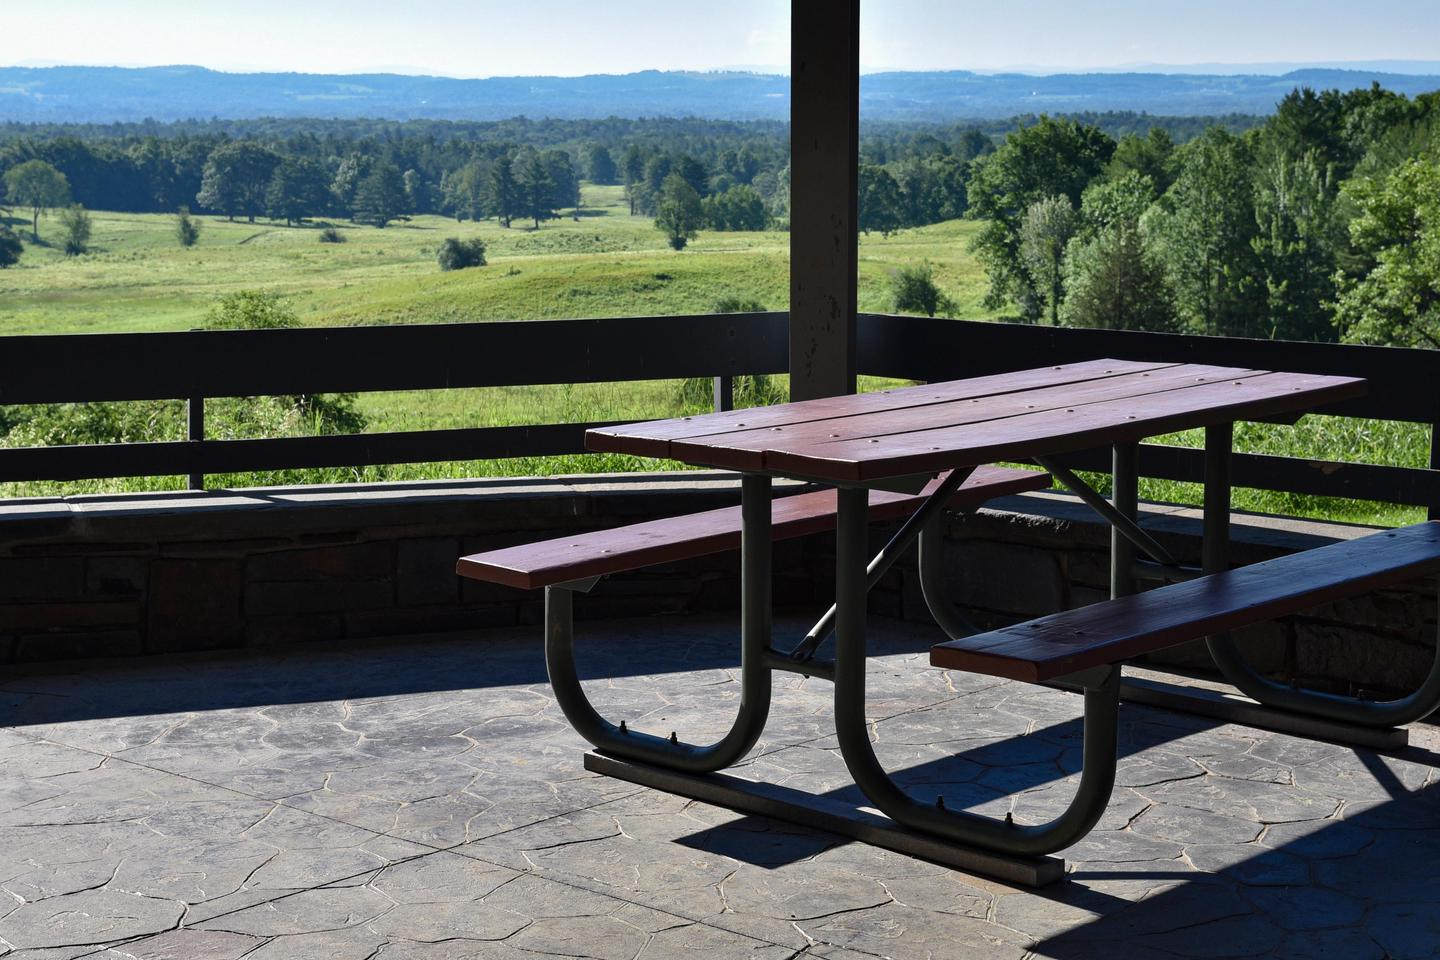 Picnic Table at the Visitor CenterPicnic tables with a view are available behind the visitor center